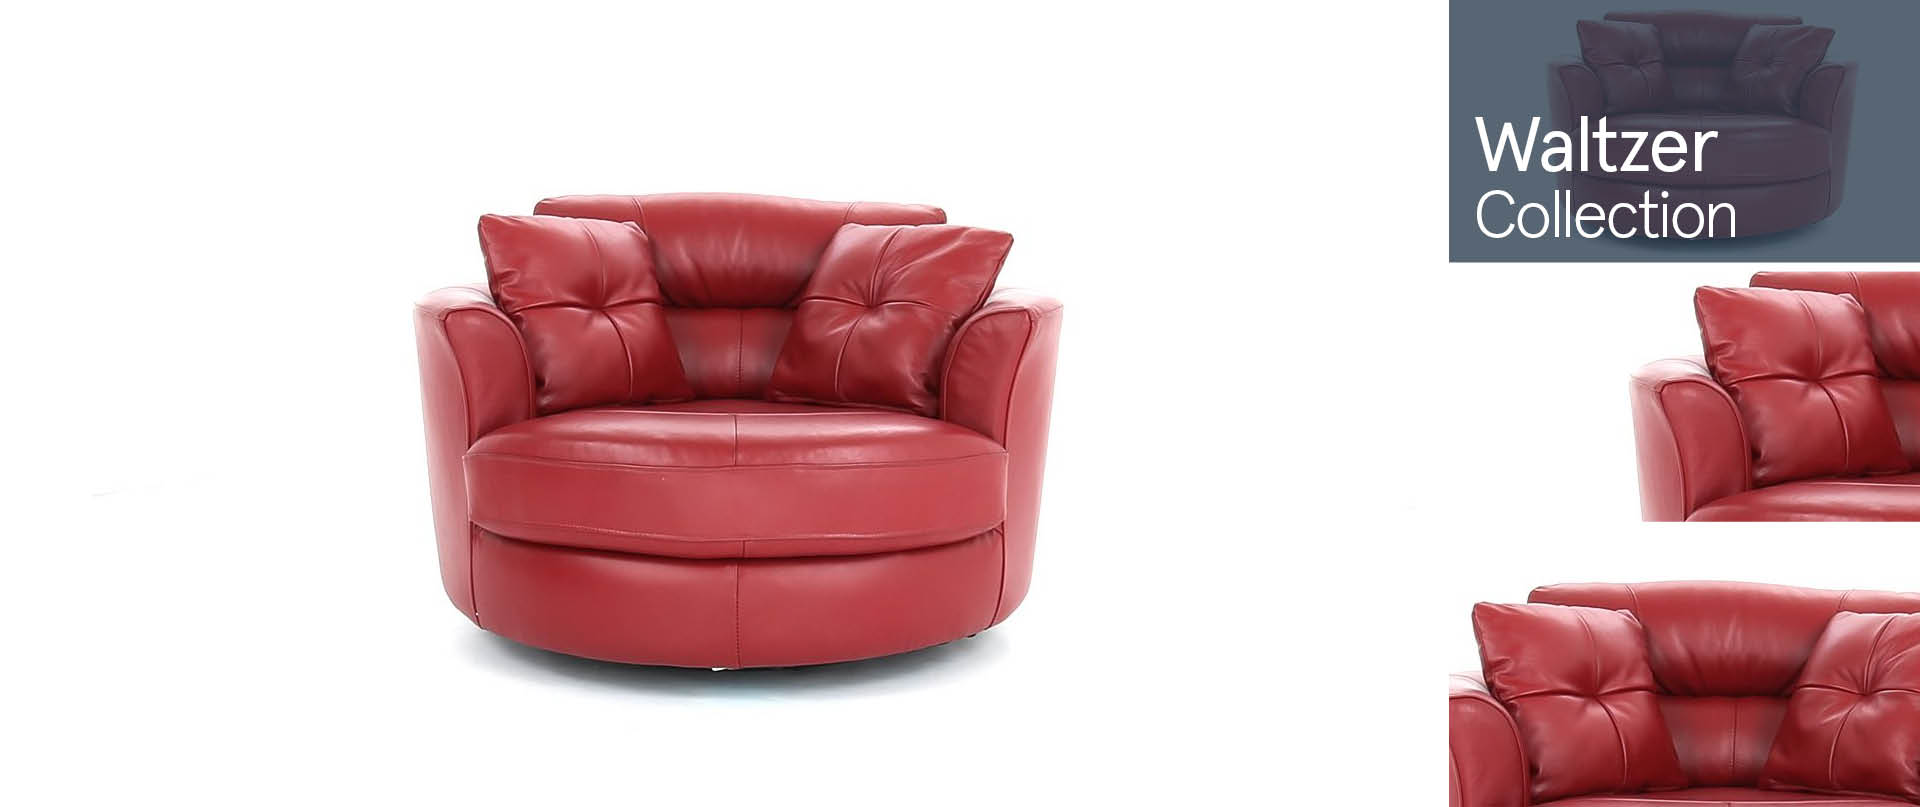 Waltzer Chairs and Footstools Ranges